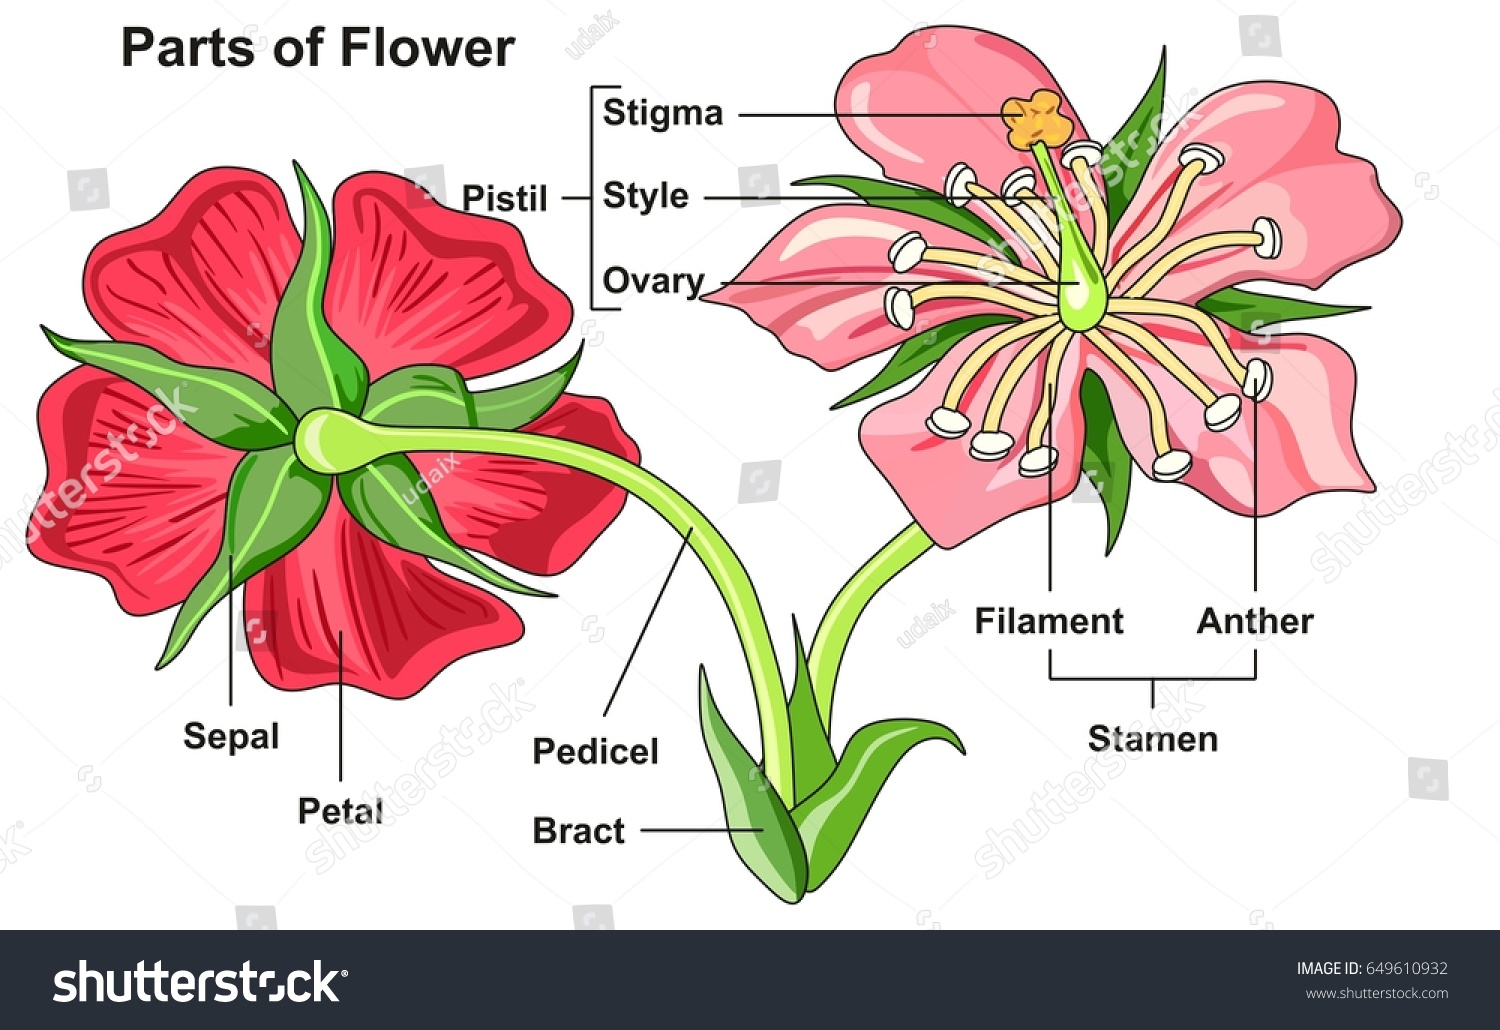 Flower Parts Diagram Front Back View Stock Vector Shutterstock